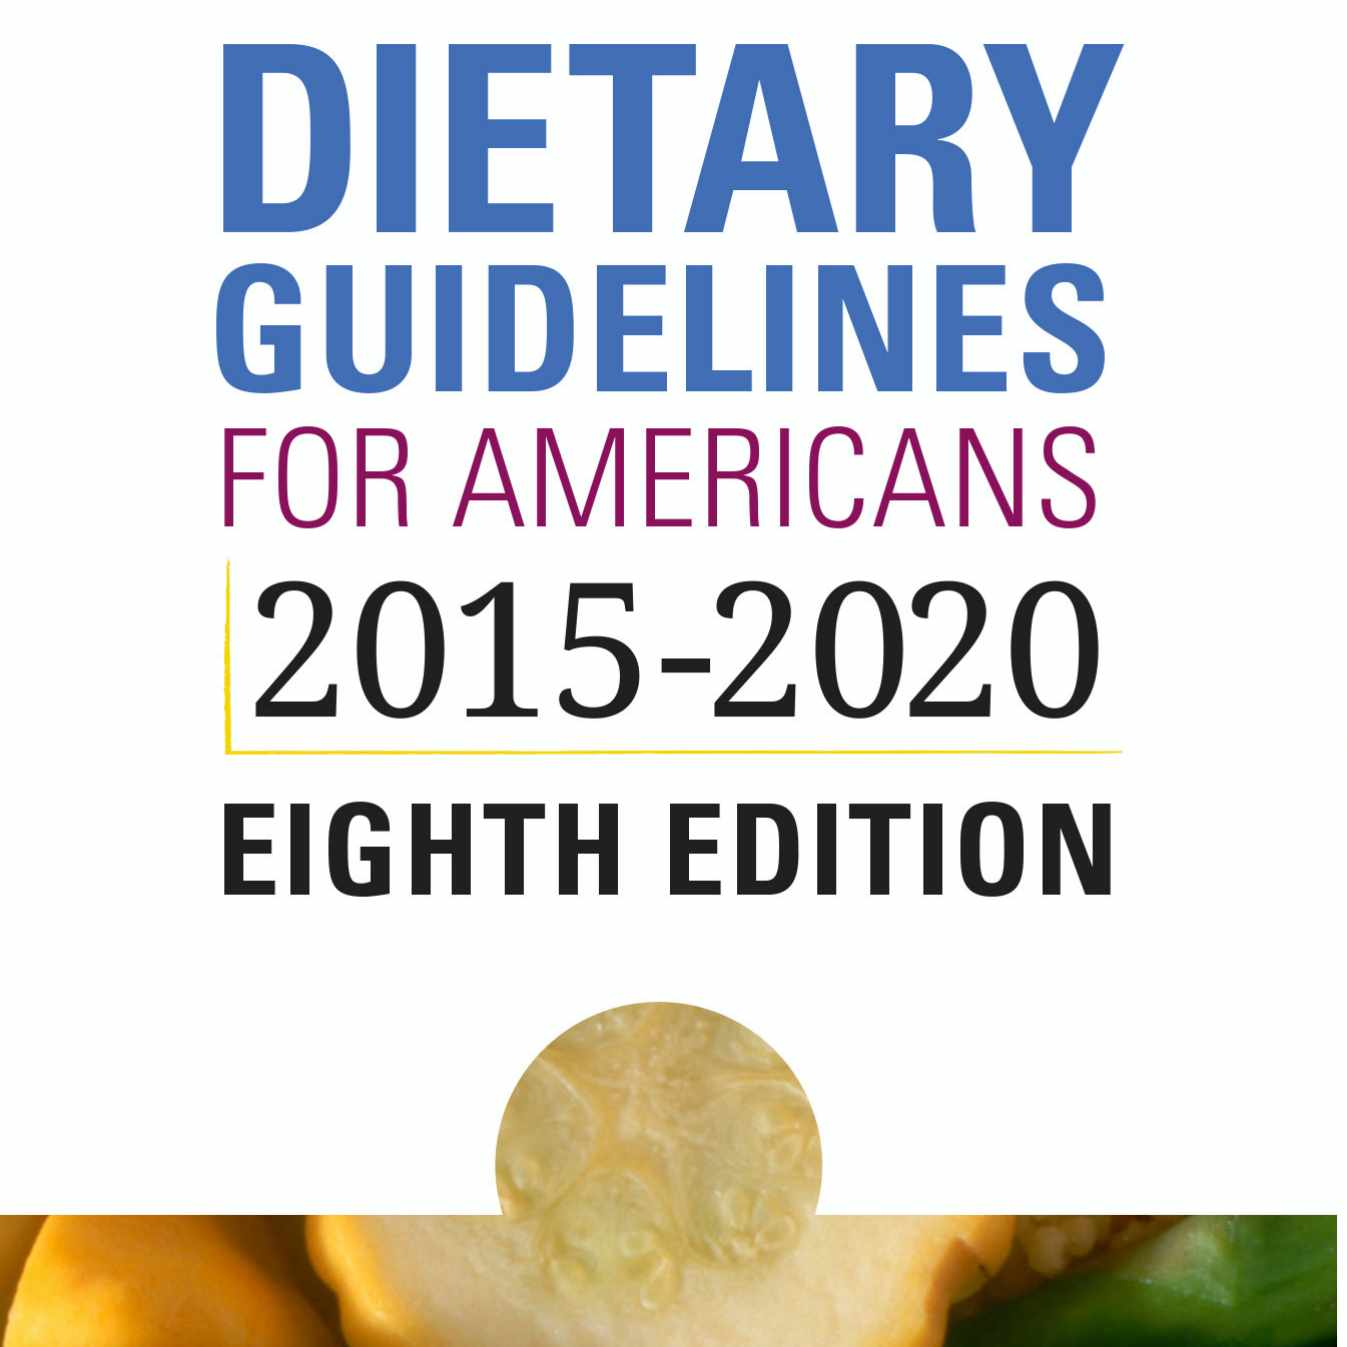 Dietary Guidelines For Americans graphic